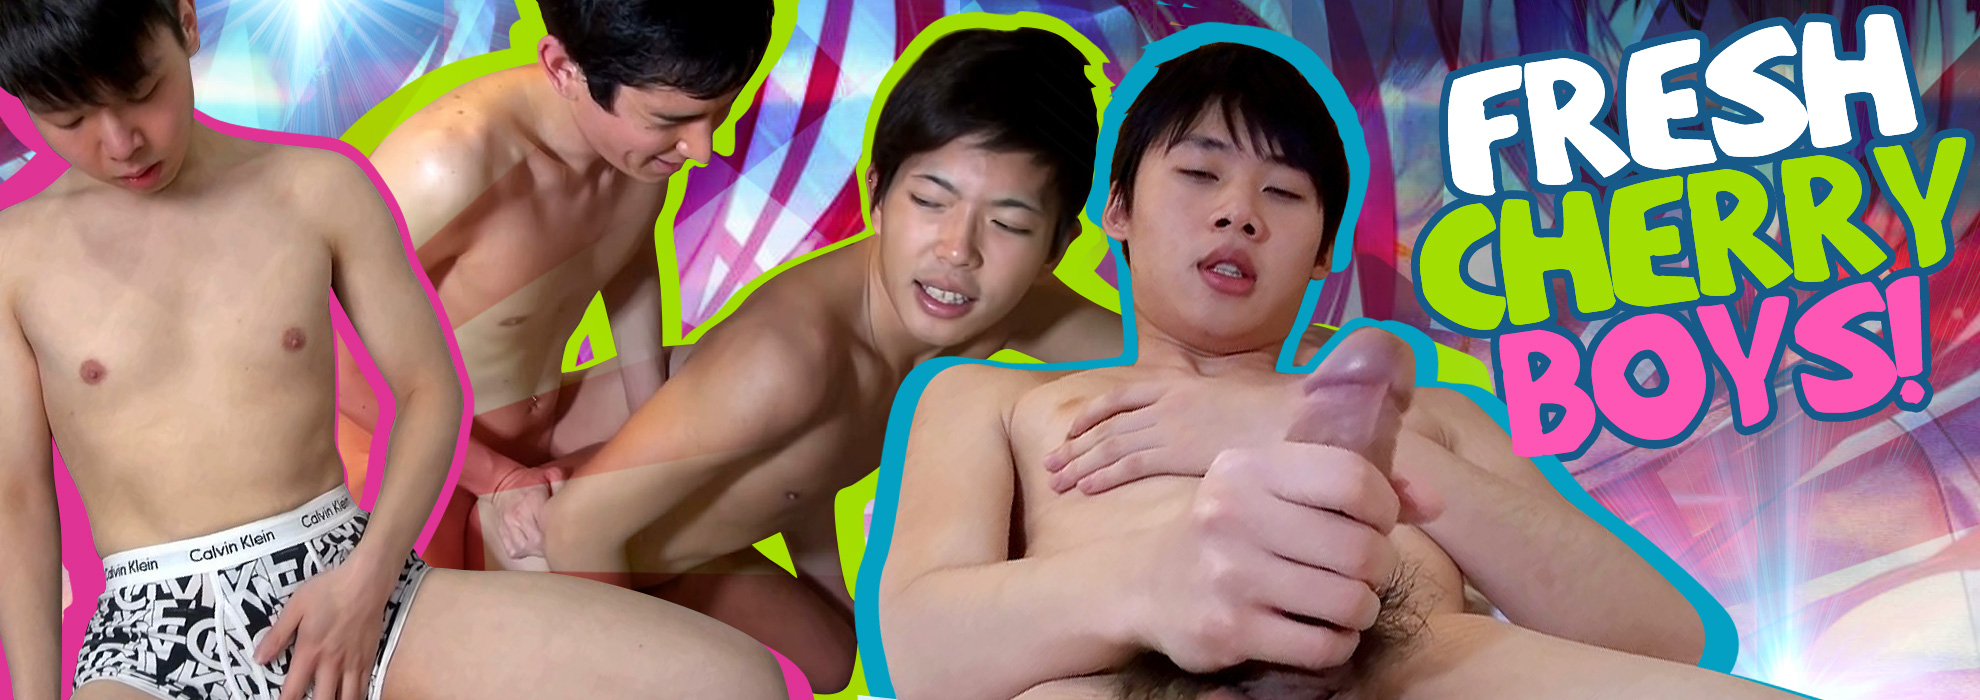 Japanese gay porn website